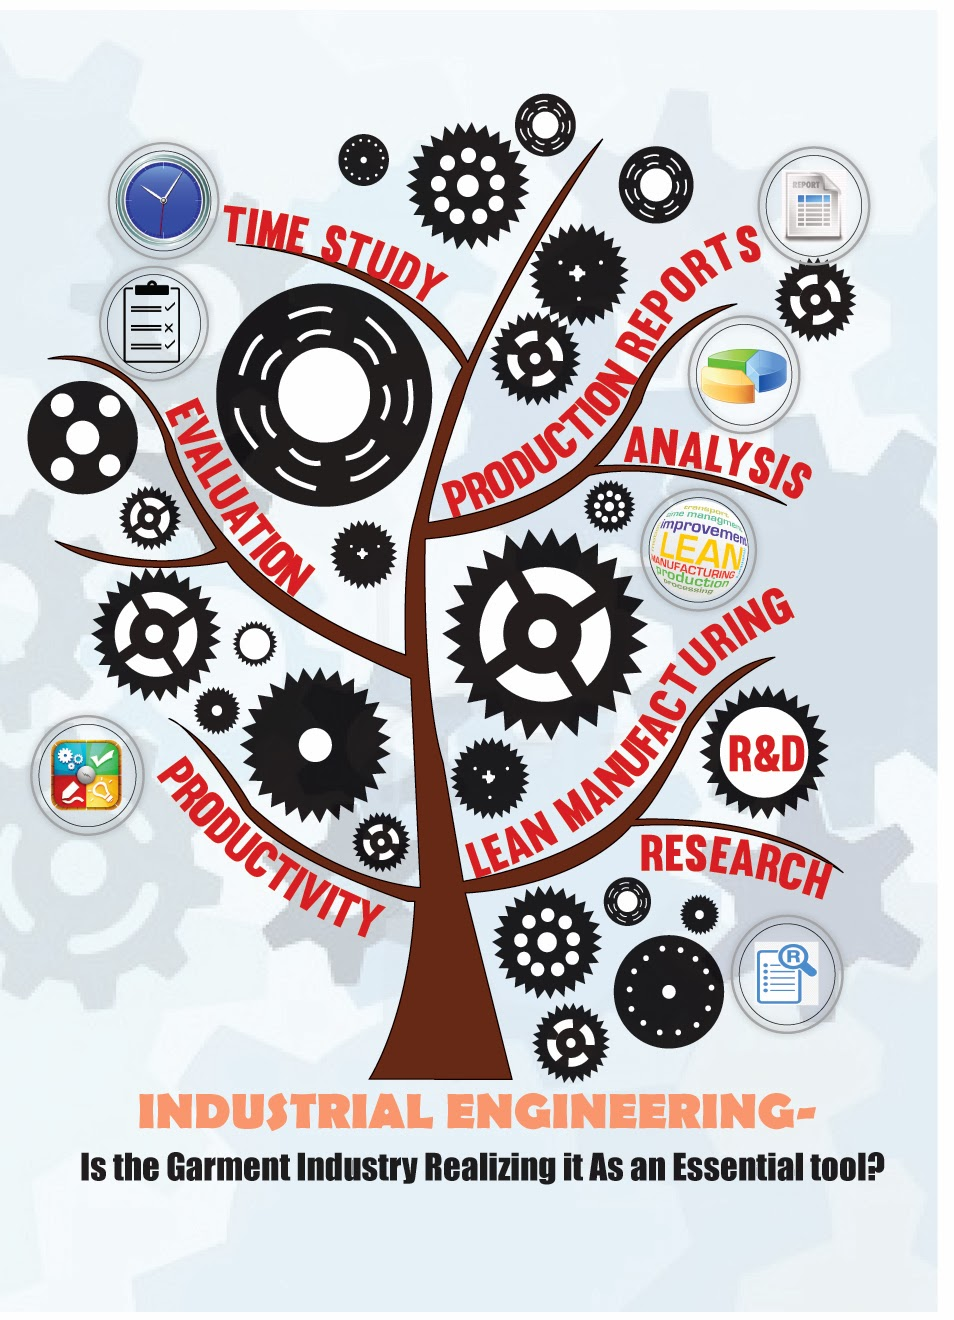 INDUSTRIAL ENGINEERING  Is the Garment Industry Realizing it As an Essential tool  PERFECT